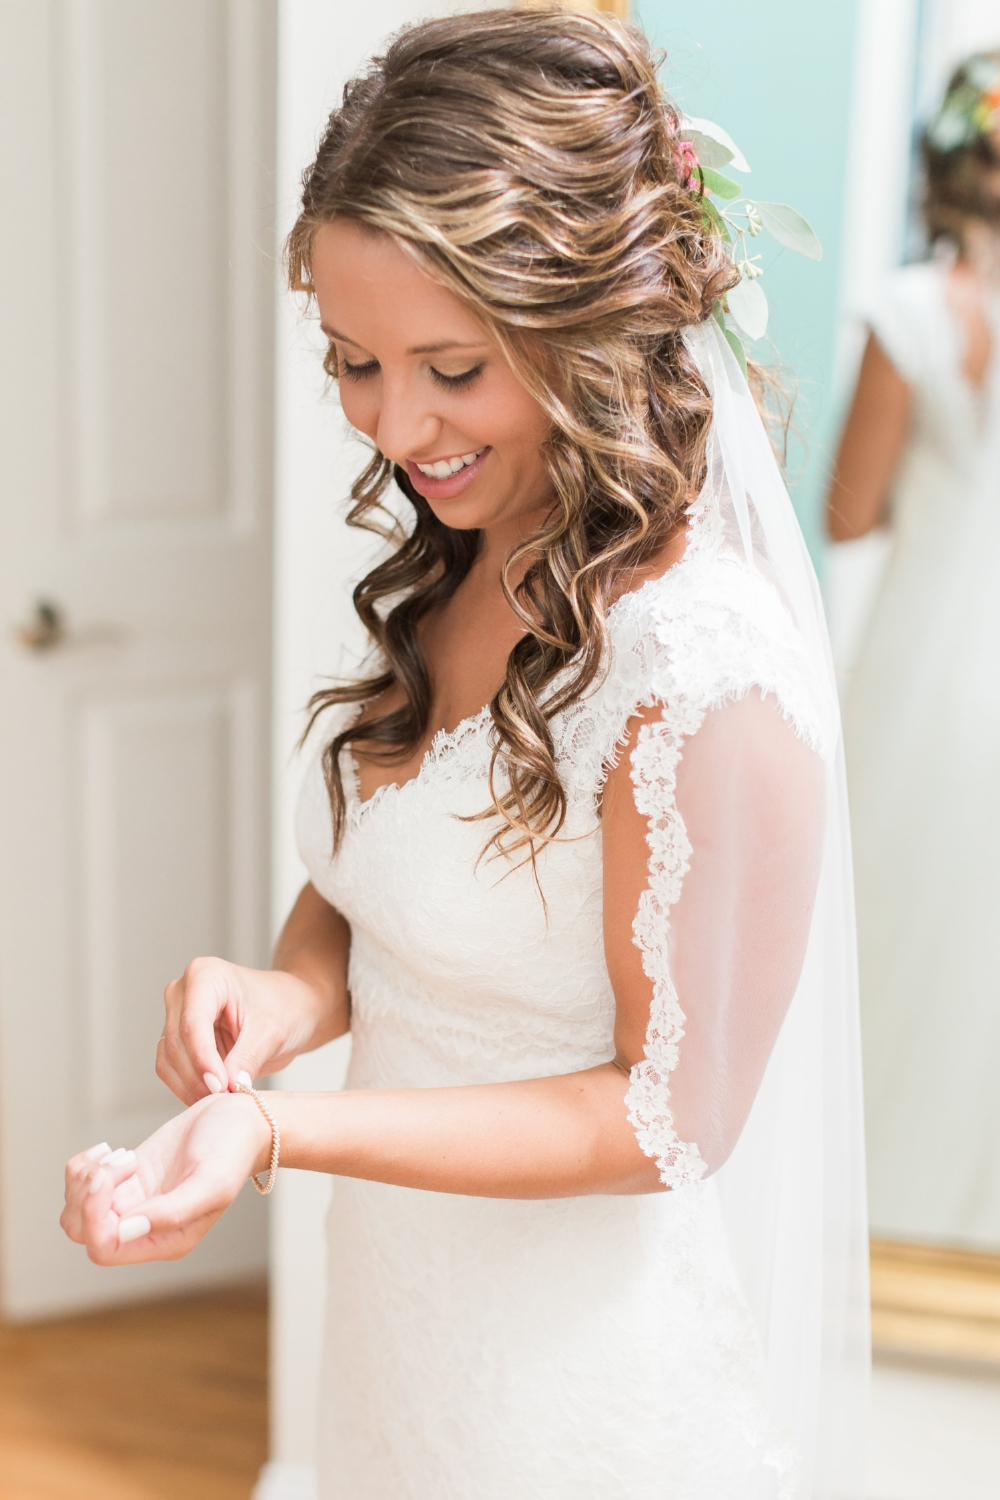 We designed a custom veil for Brittany Tilley made from European net and hand cut French lace.